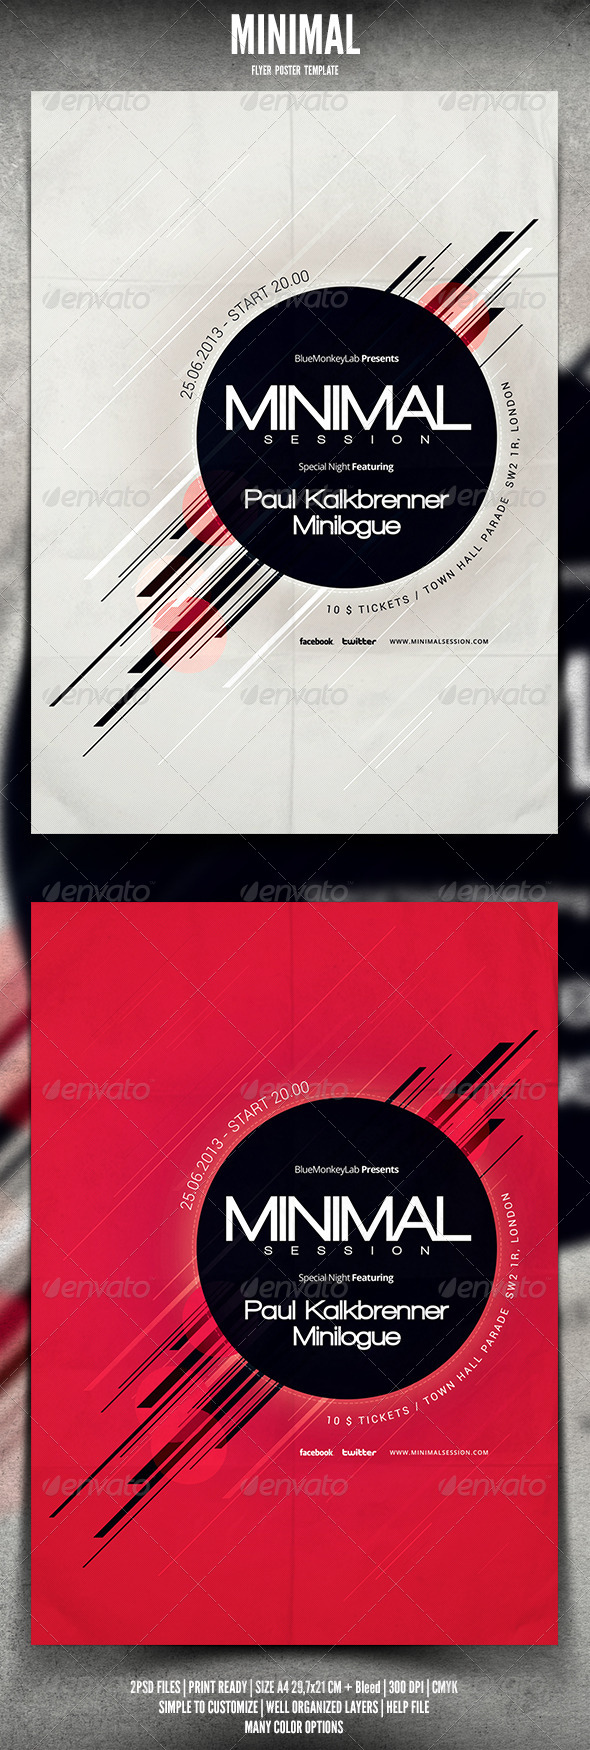 GraphicRiver Minimal Flyer Poster 4697472